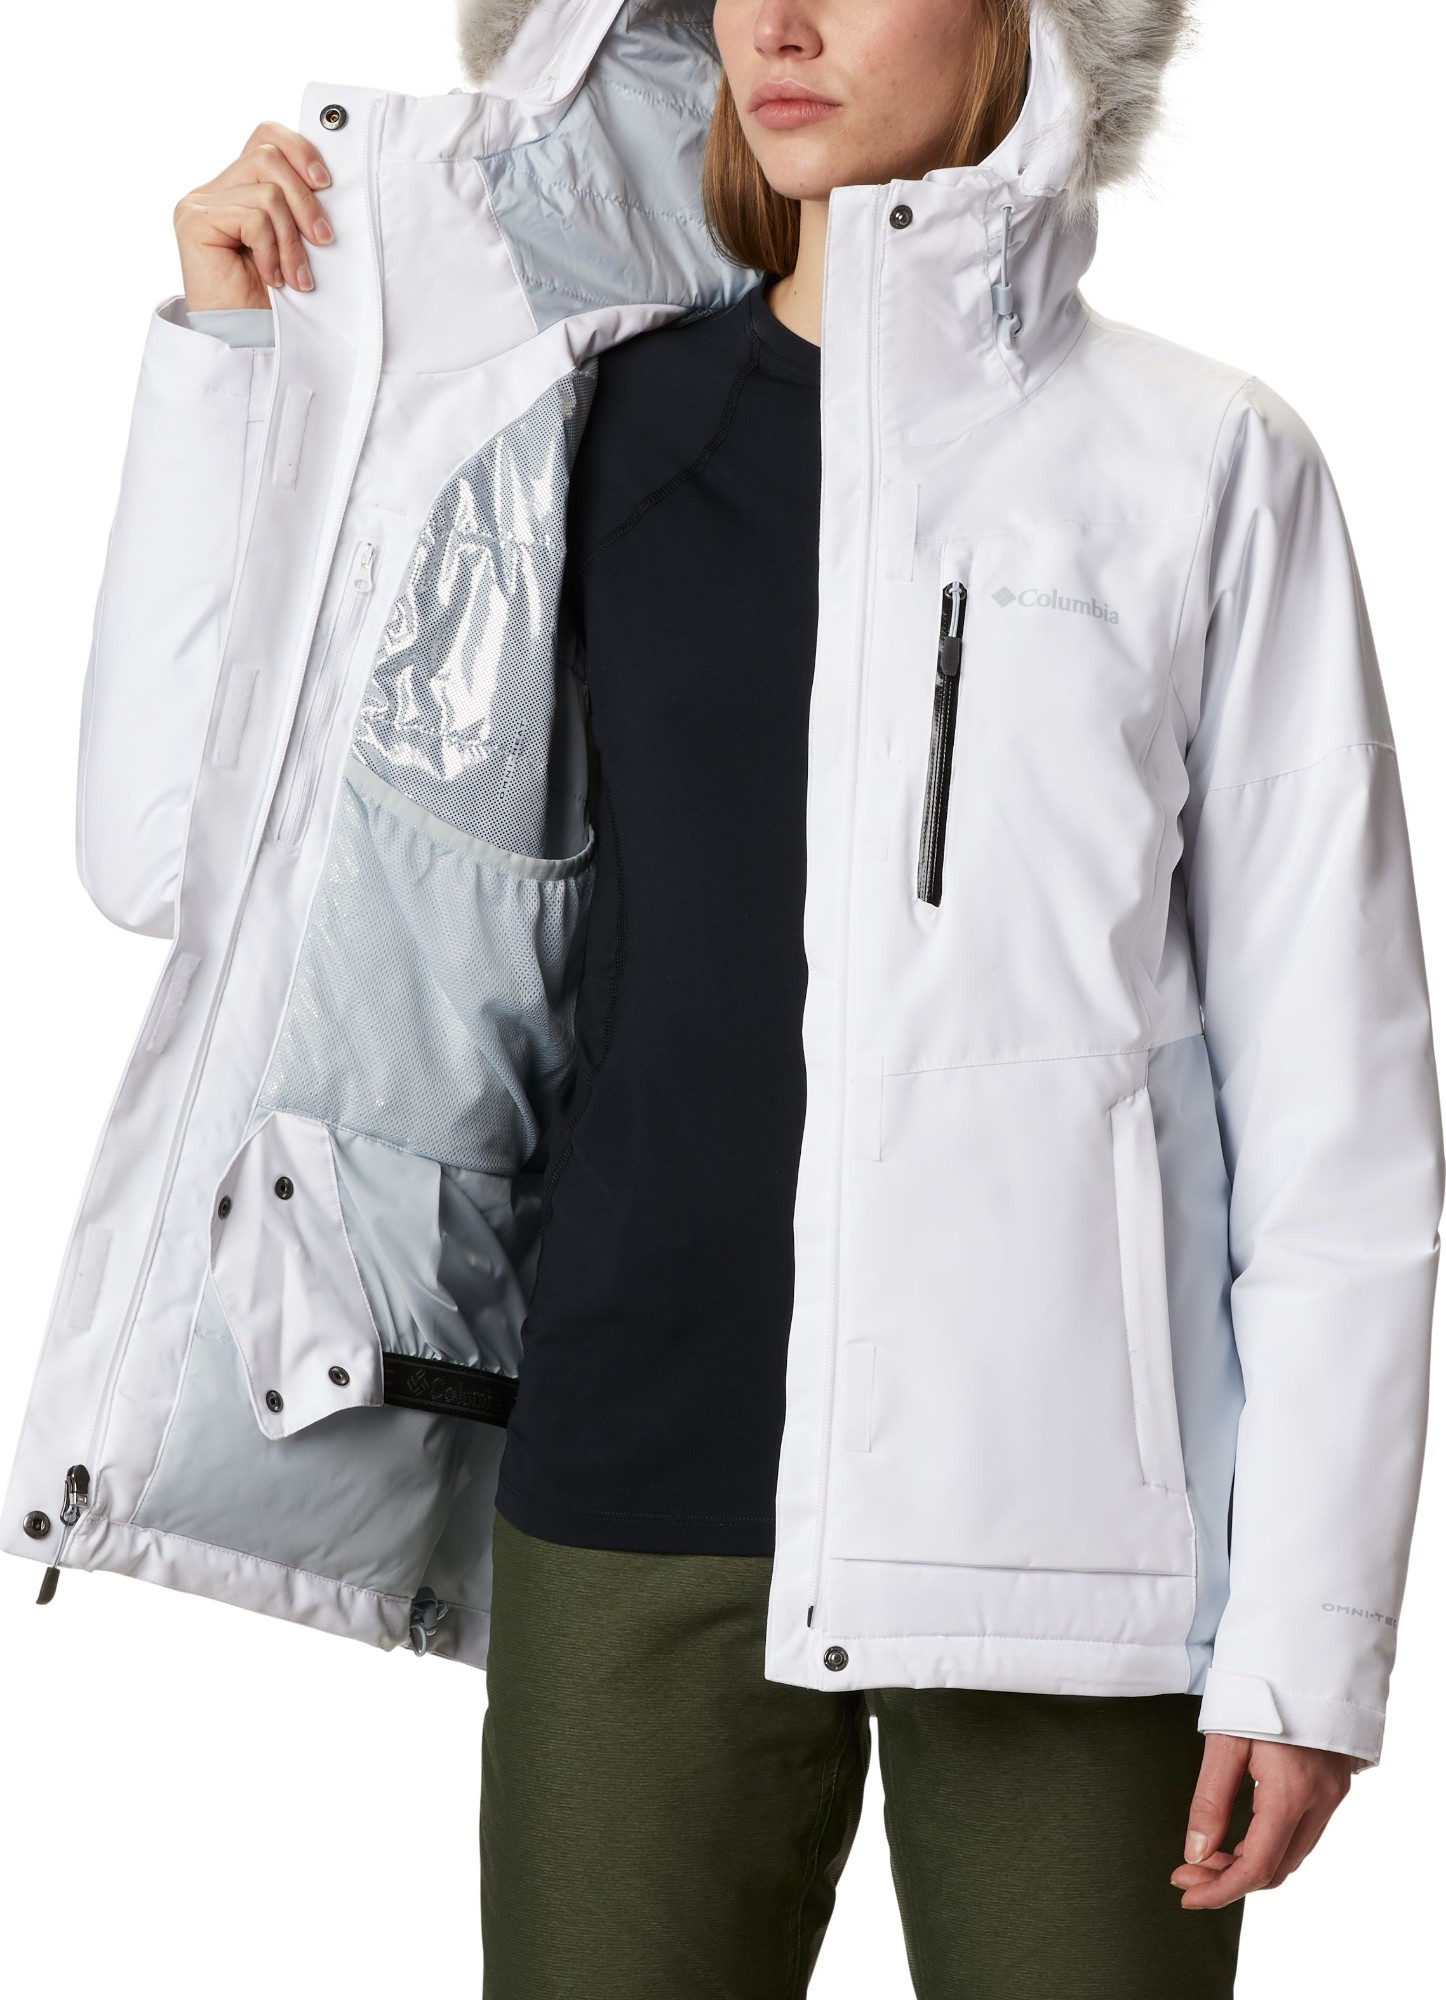 Columbia Ava Alpine Insulated Jacket Women's White/Cirrus Grey S